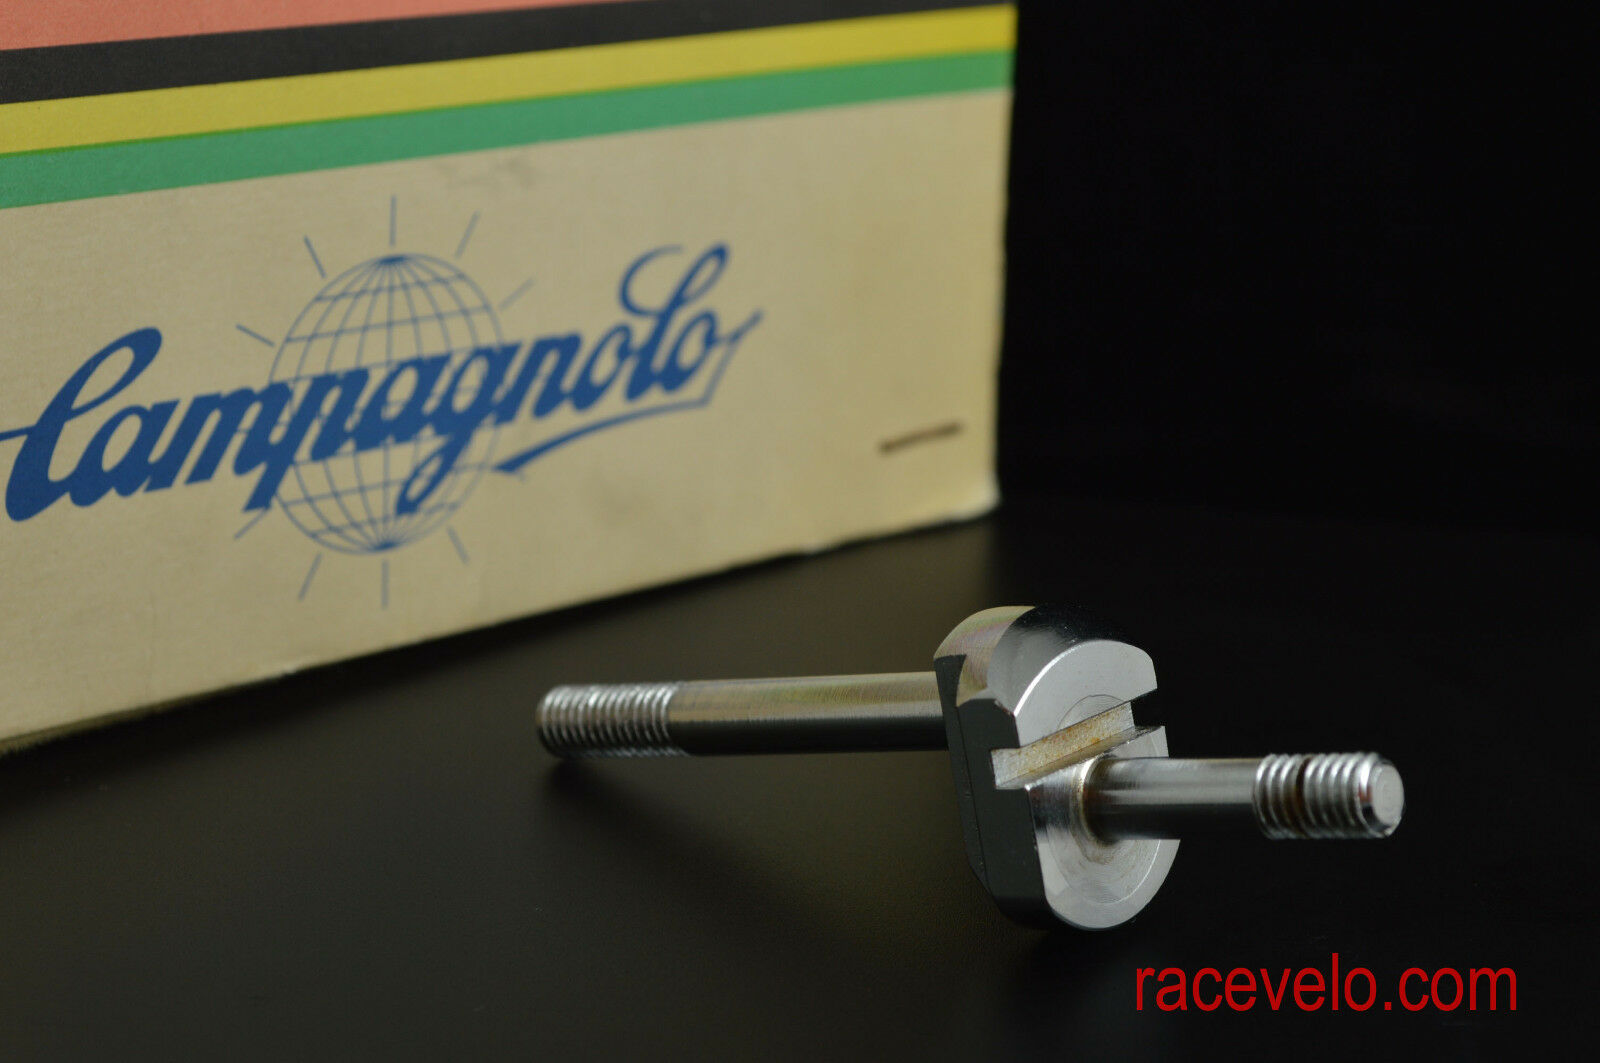 Vintage NOS Brake drop bolt chrome for Campagnolo Dia Compe gipiemme Long NEW